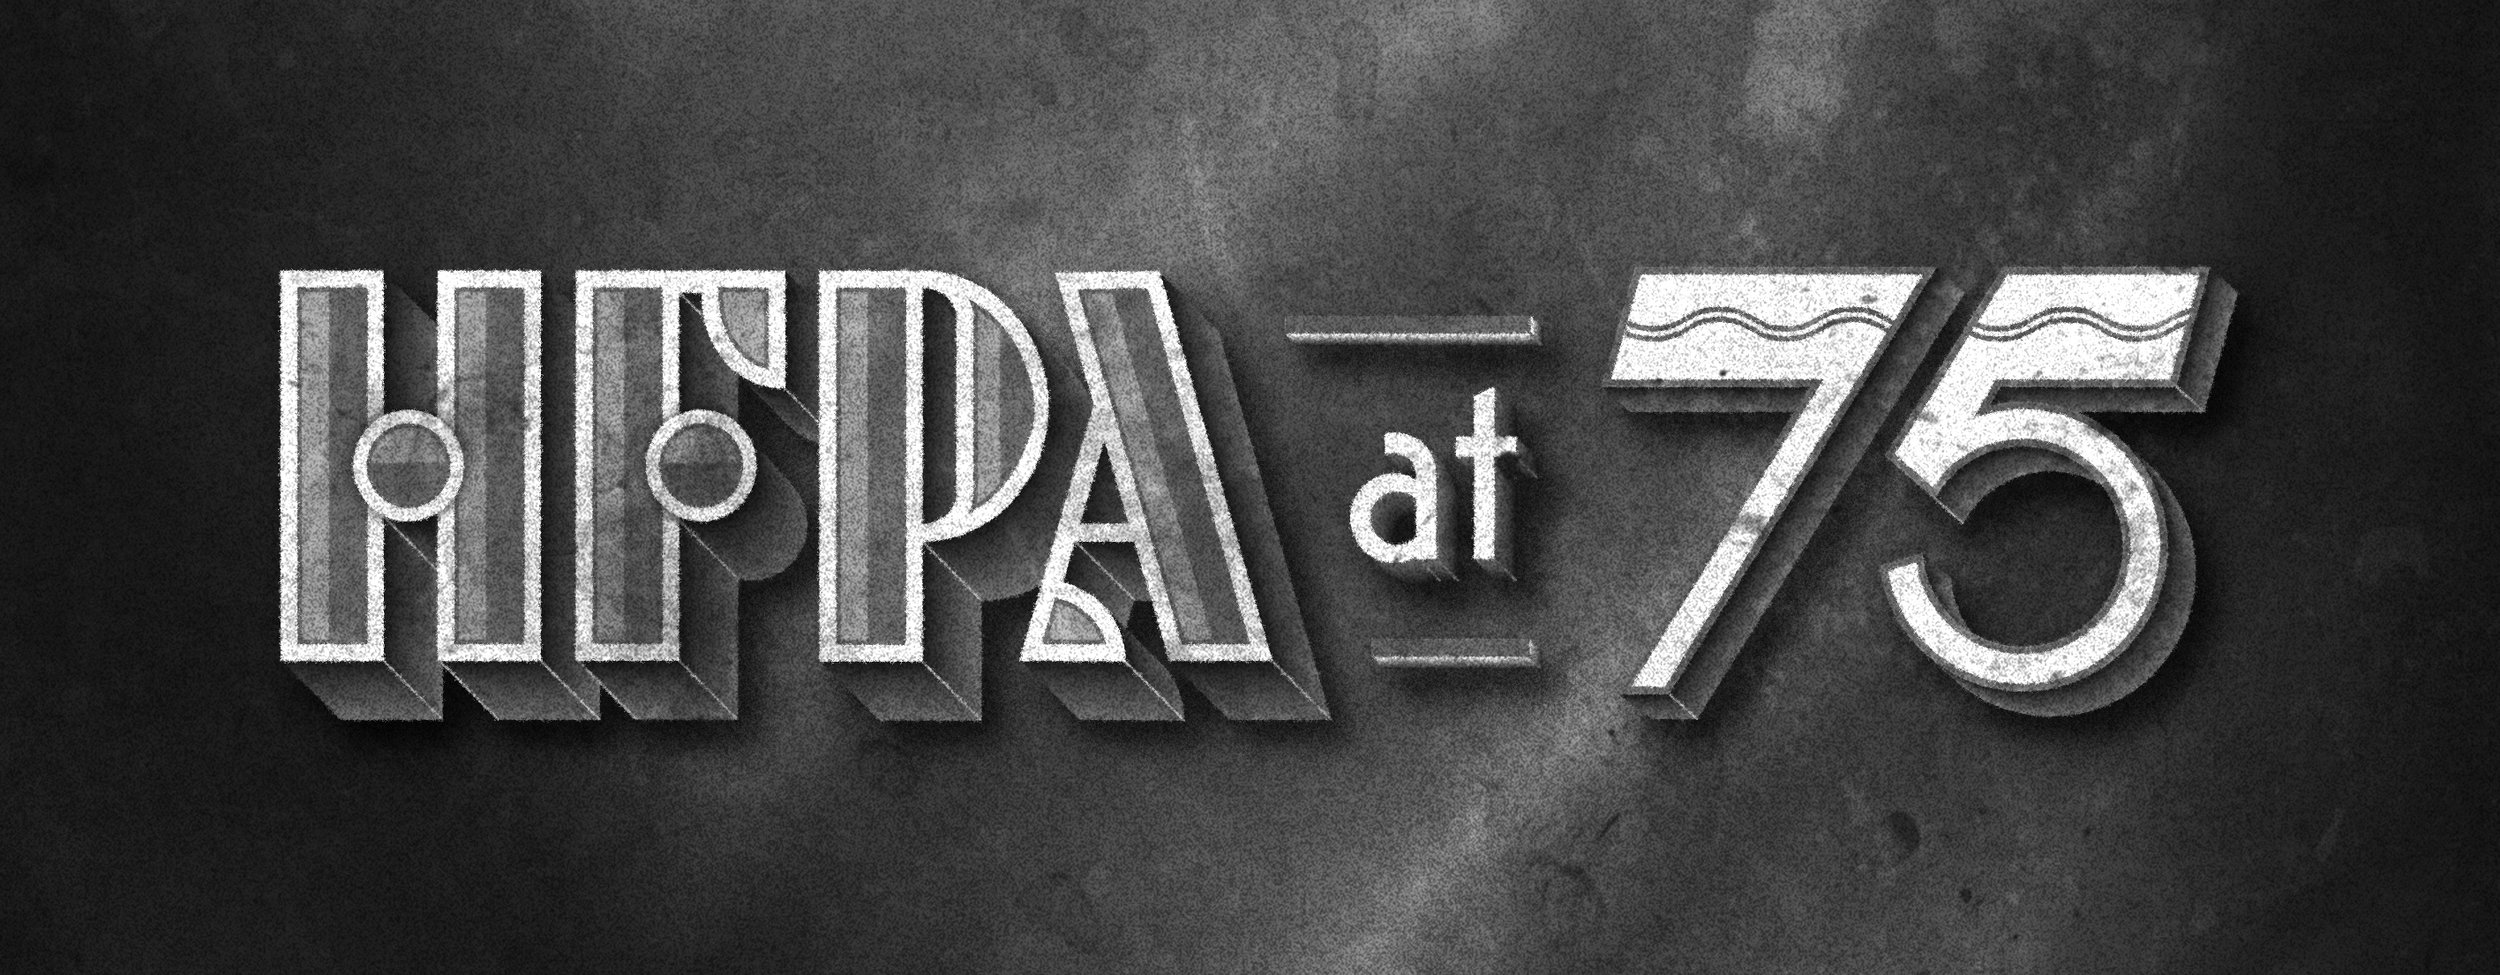 The Hollywood Foreign Press Association at 75 •  Lettering & Typography